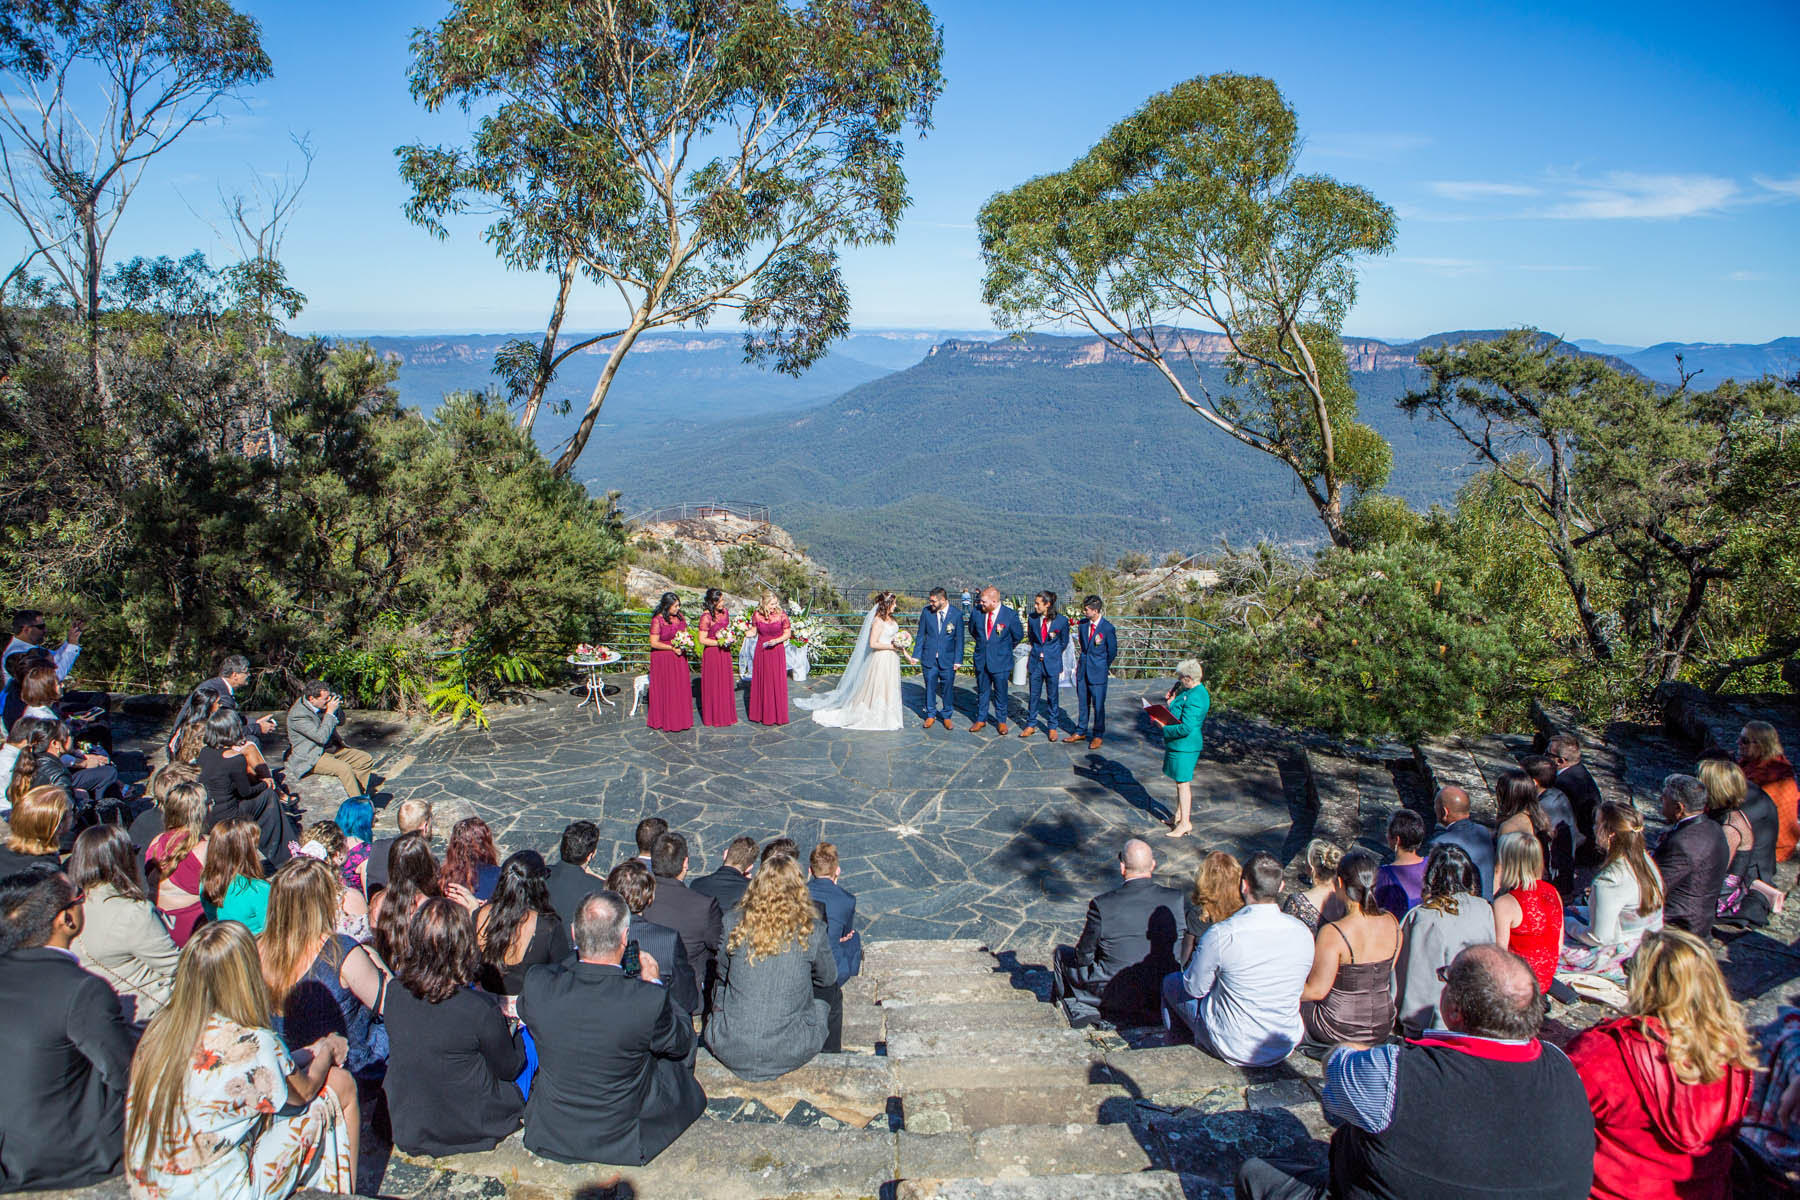 Susan Artup, Marriage Celebrant from the Blue Mountains